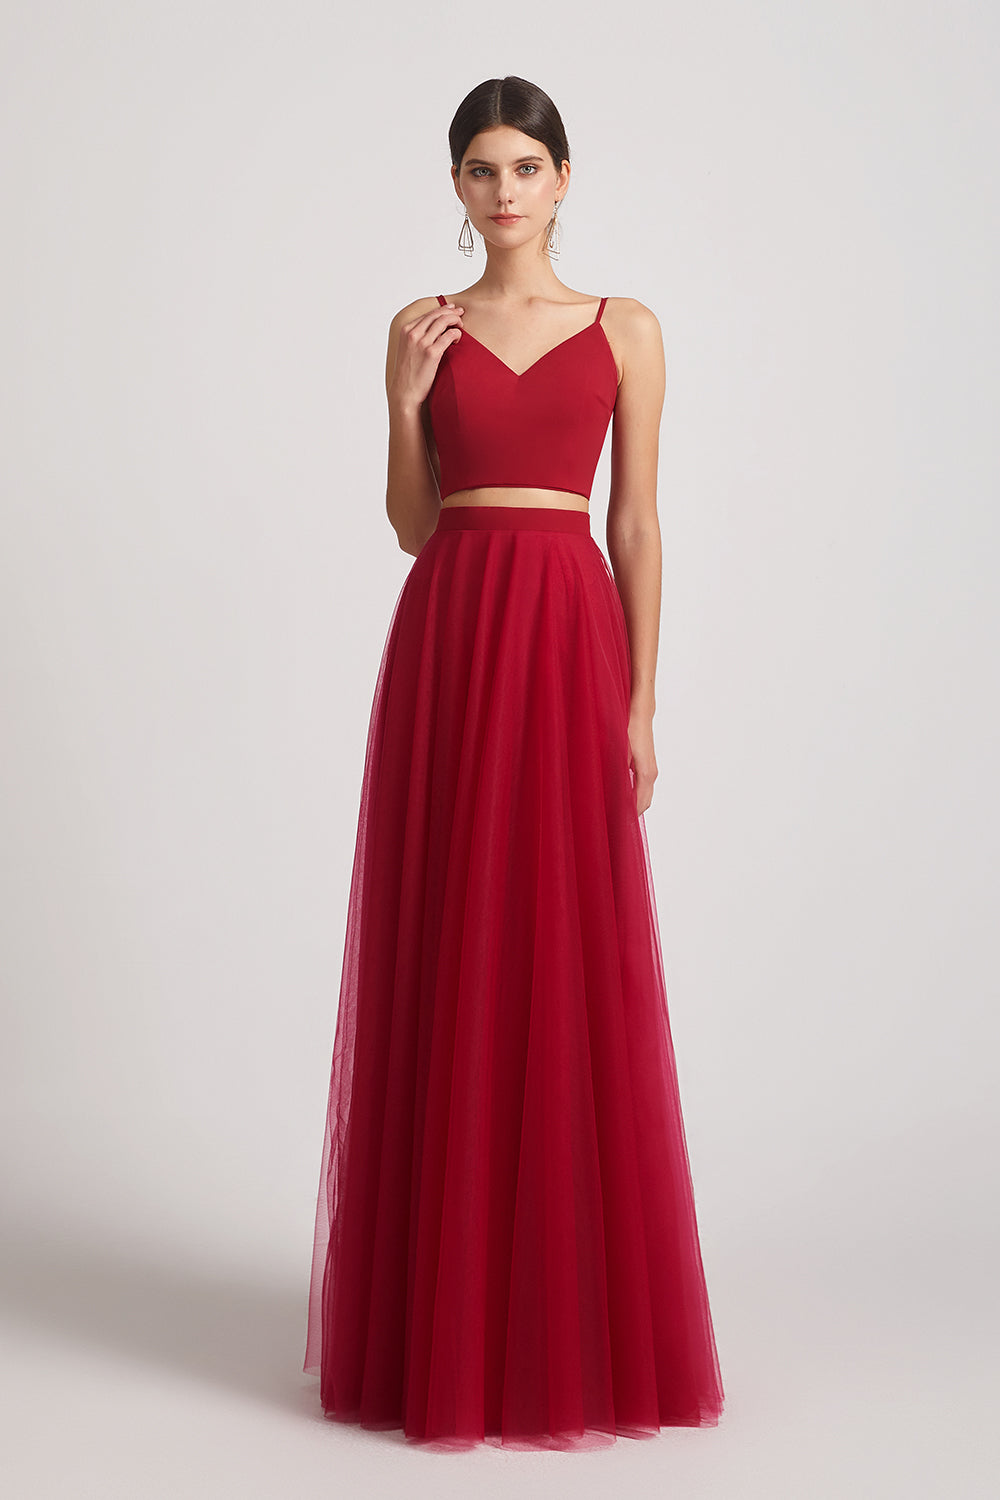 affordable prom dresses 2021